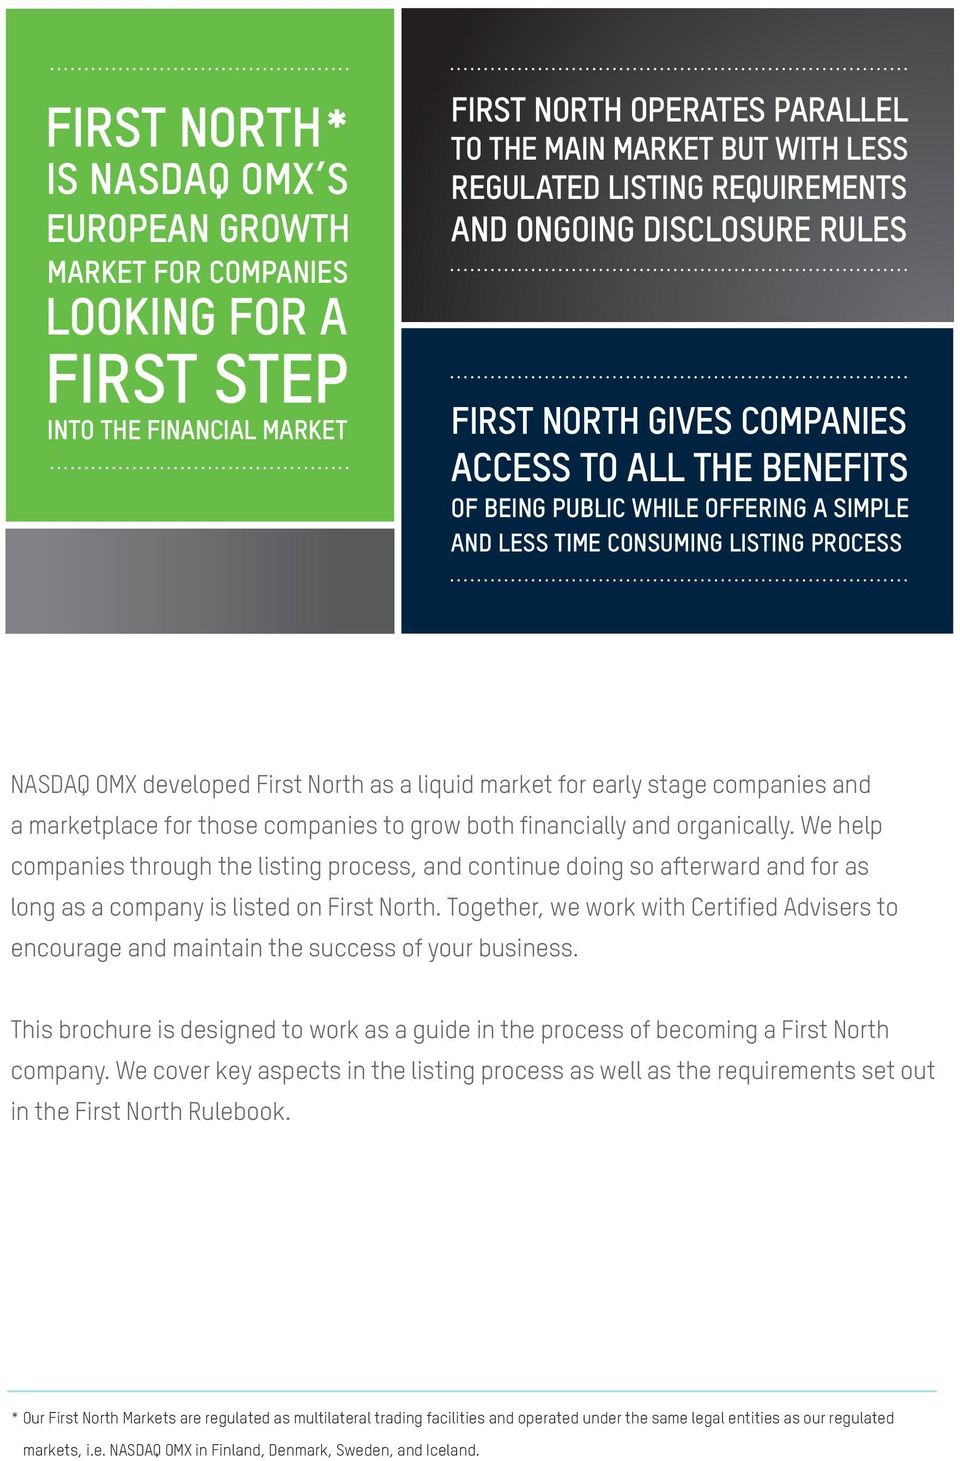 GUIDE TO LISTING ON NASDAQ OMX FIRST NORTH - PDF